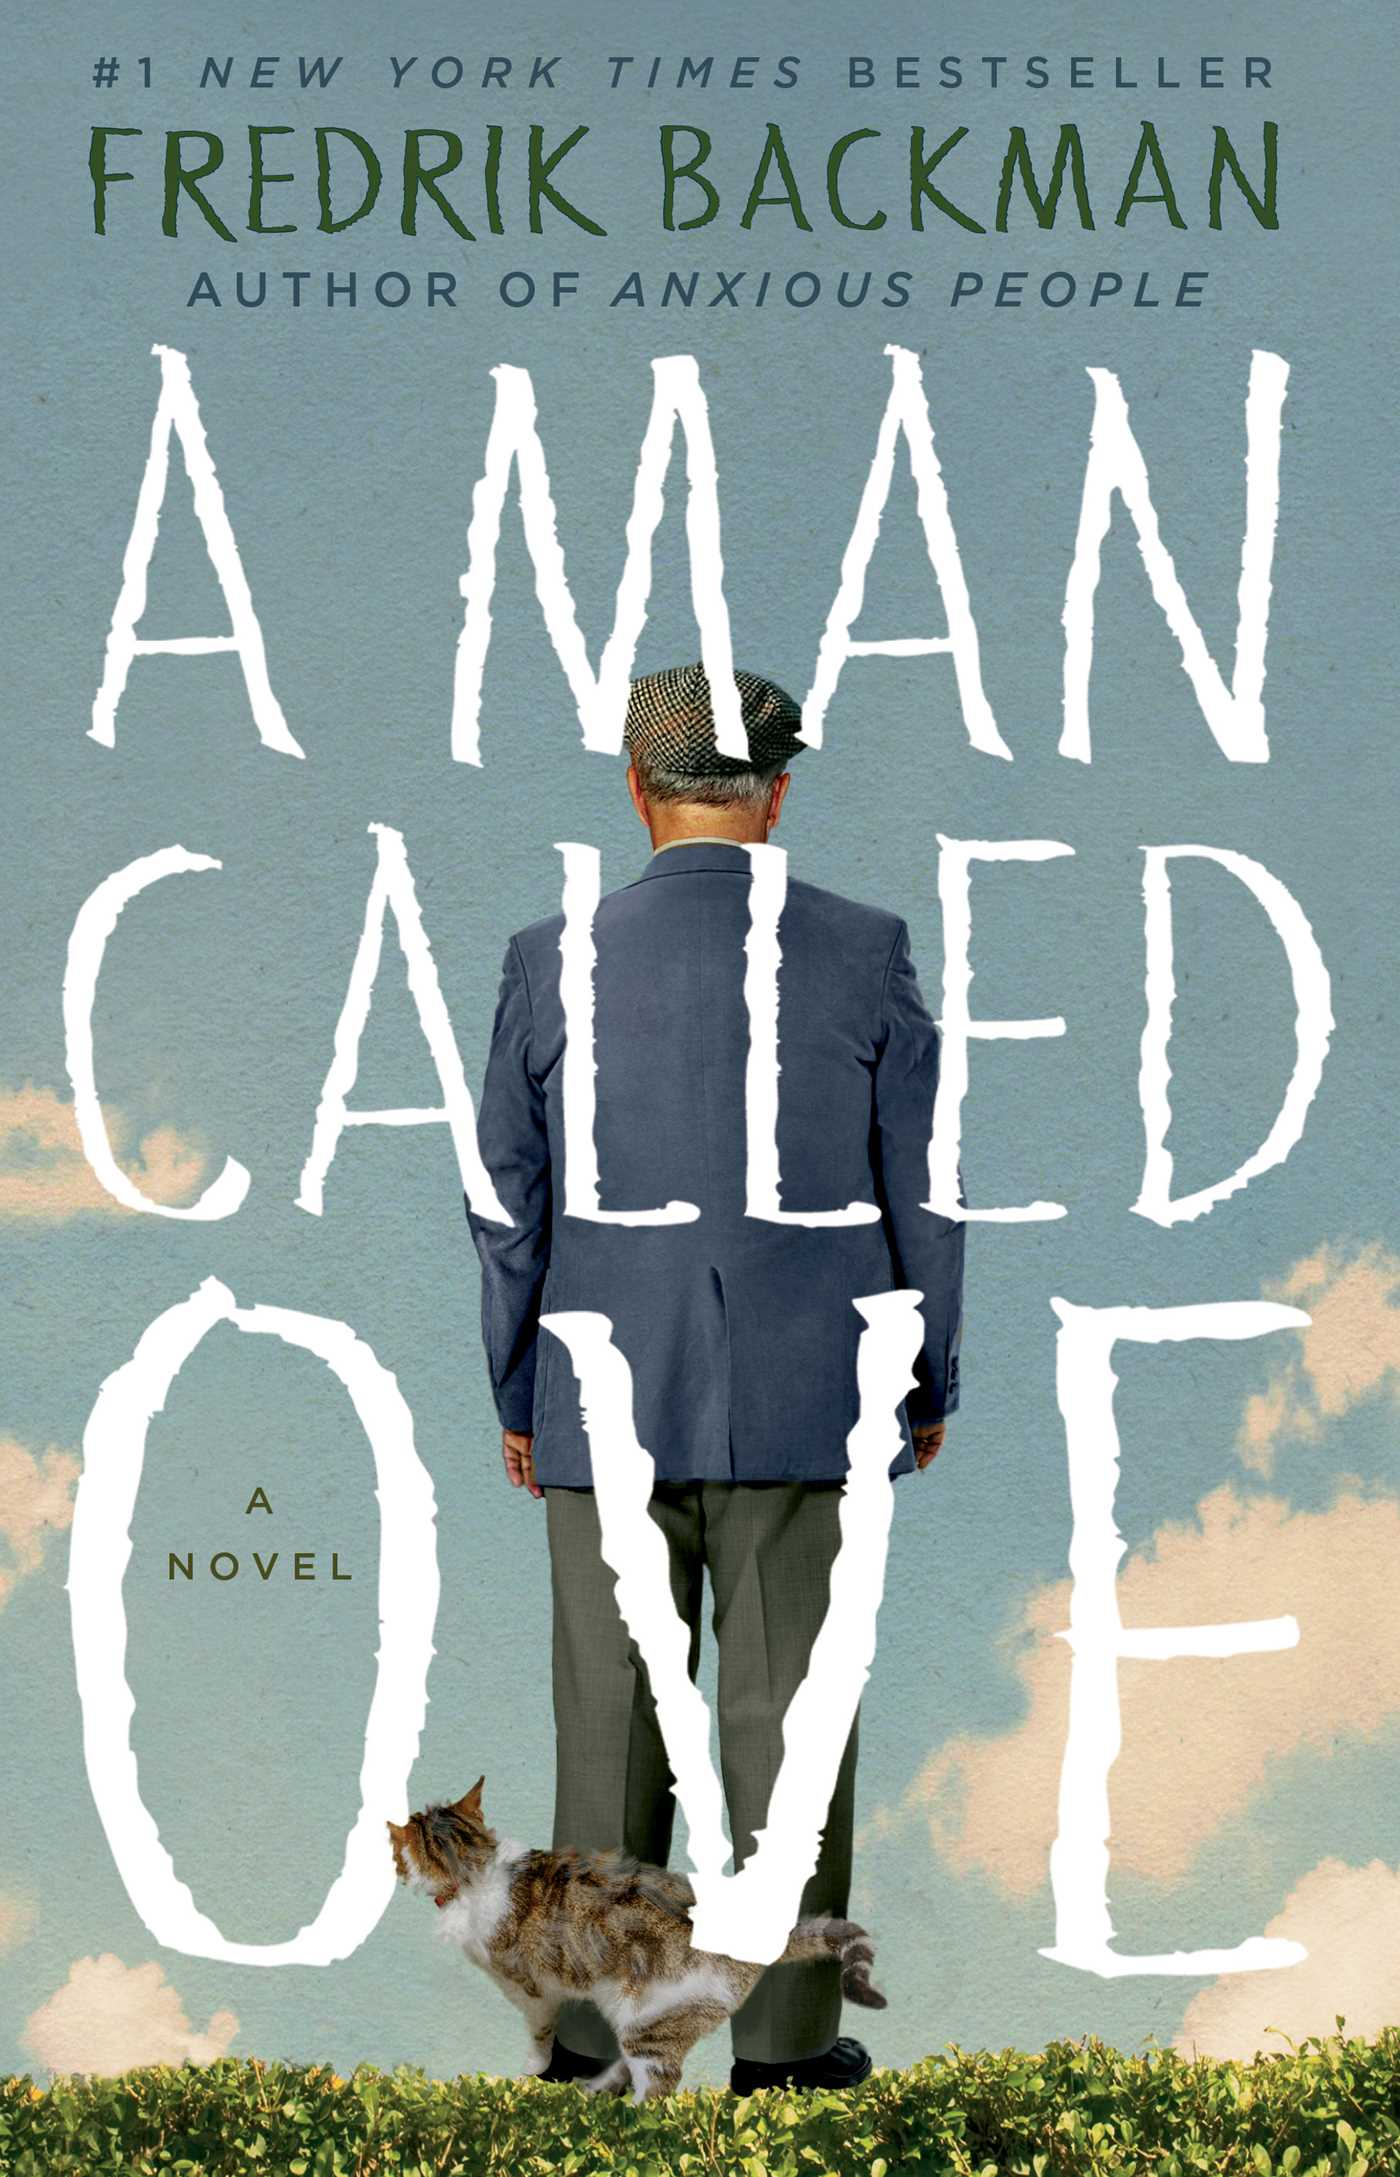 A man called ove 9781476738017 hr